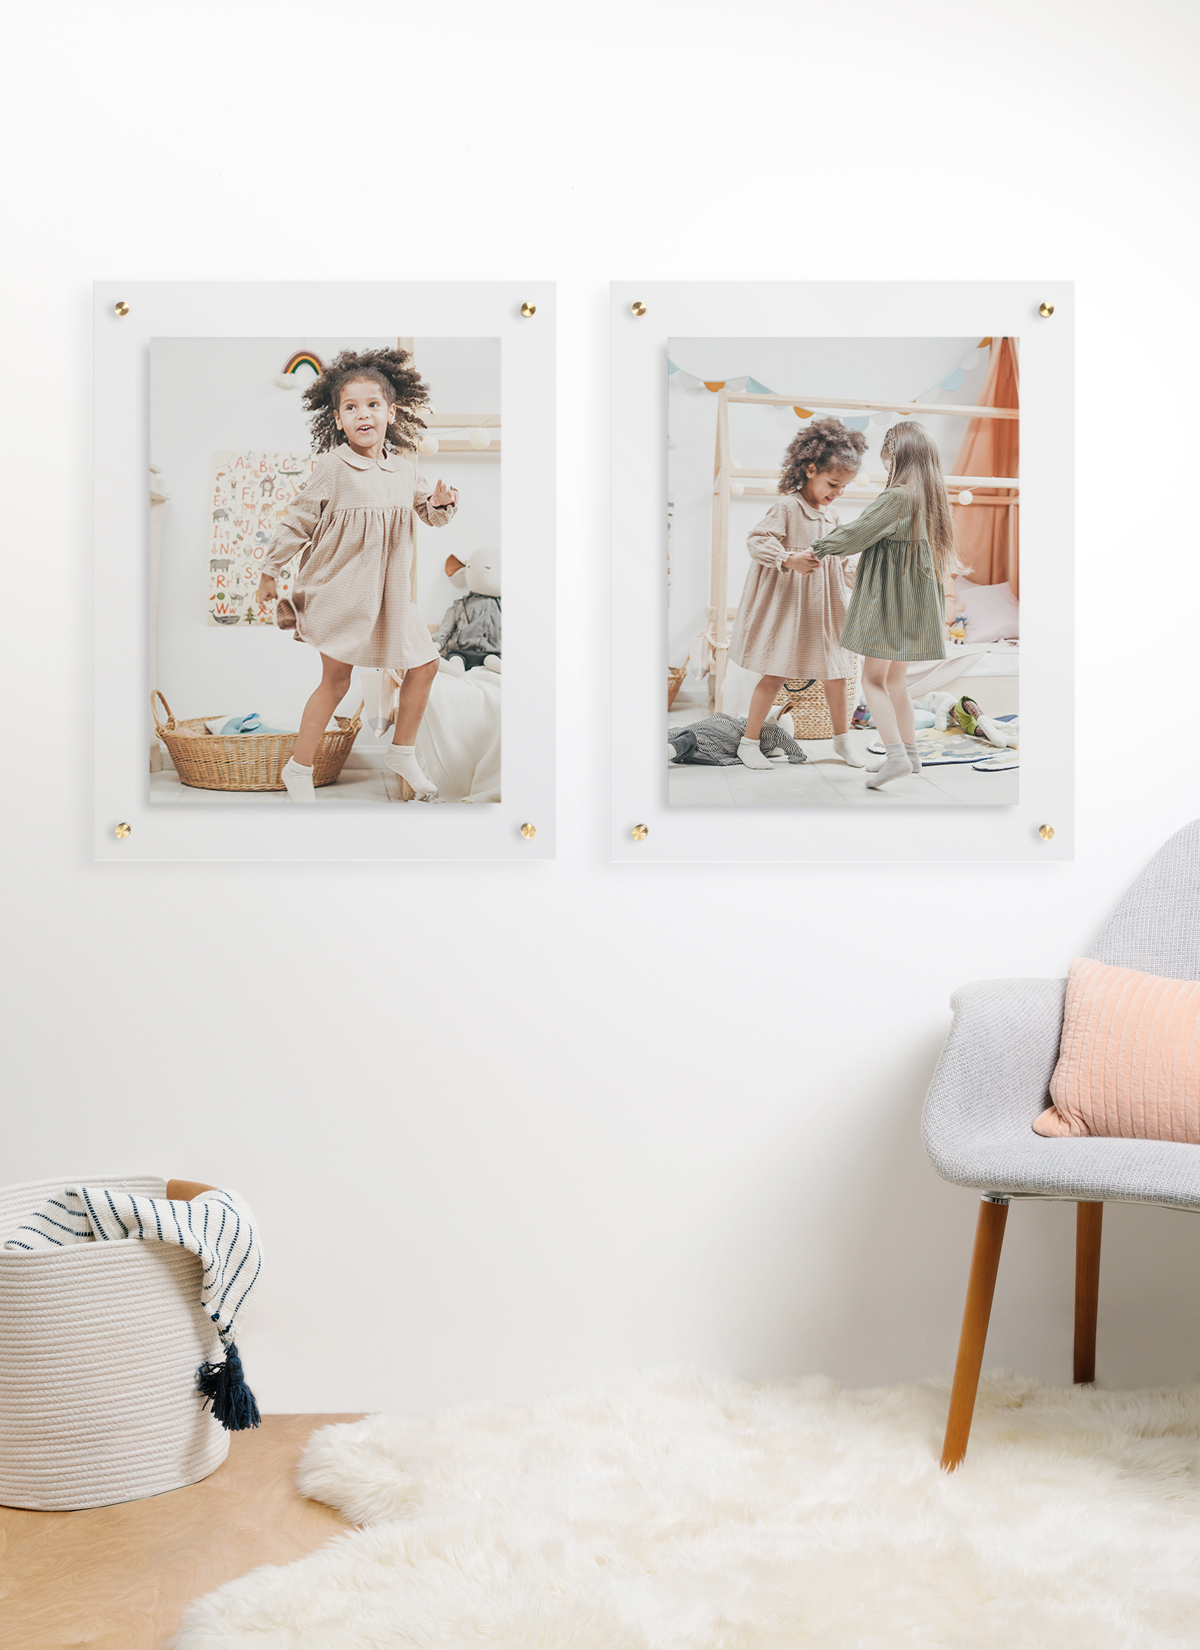 Two large Artifact Uprising Floating Frames on wall featuring photo of little girl